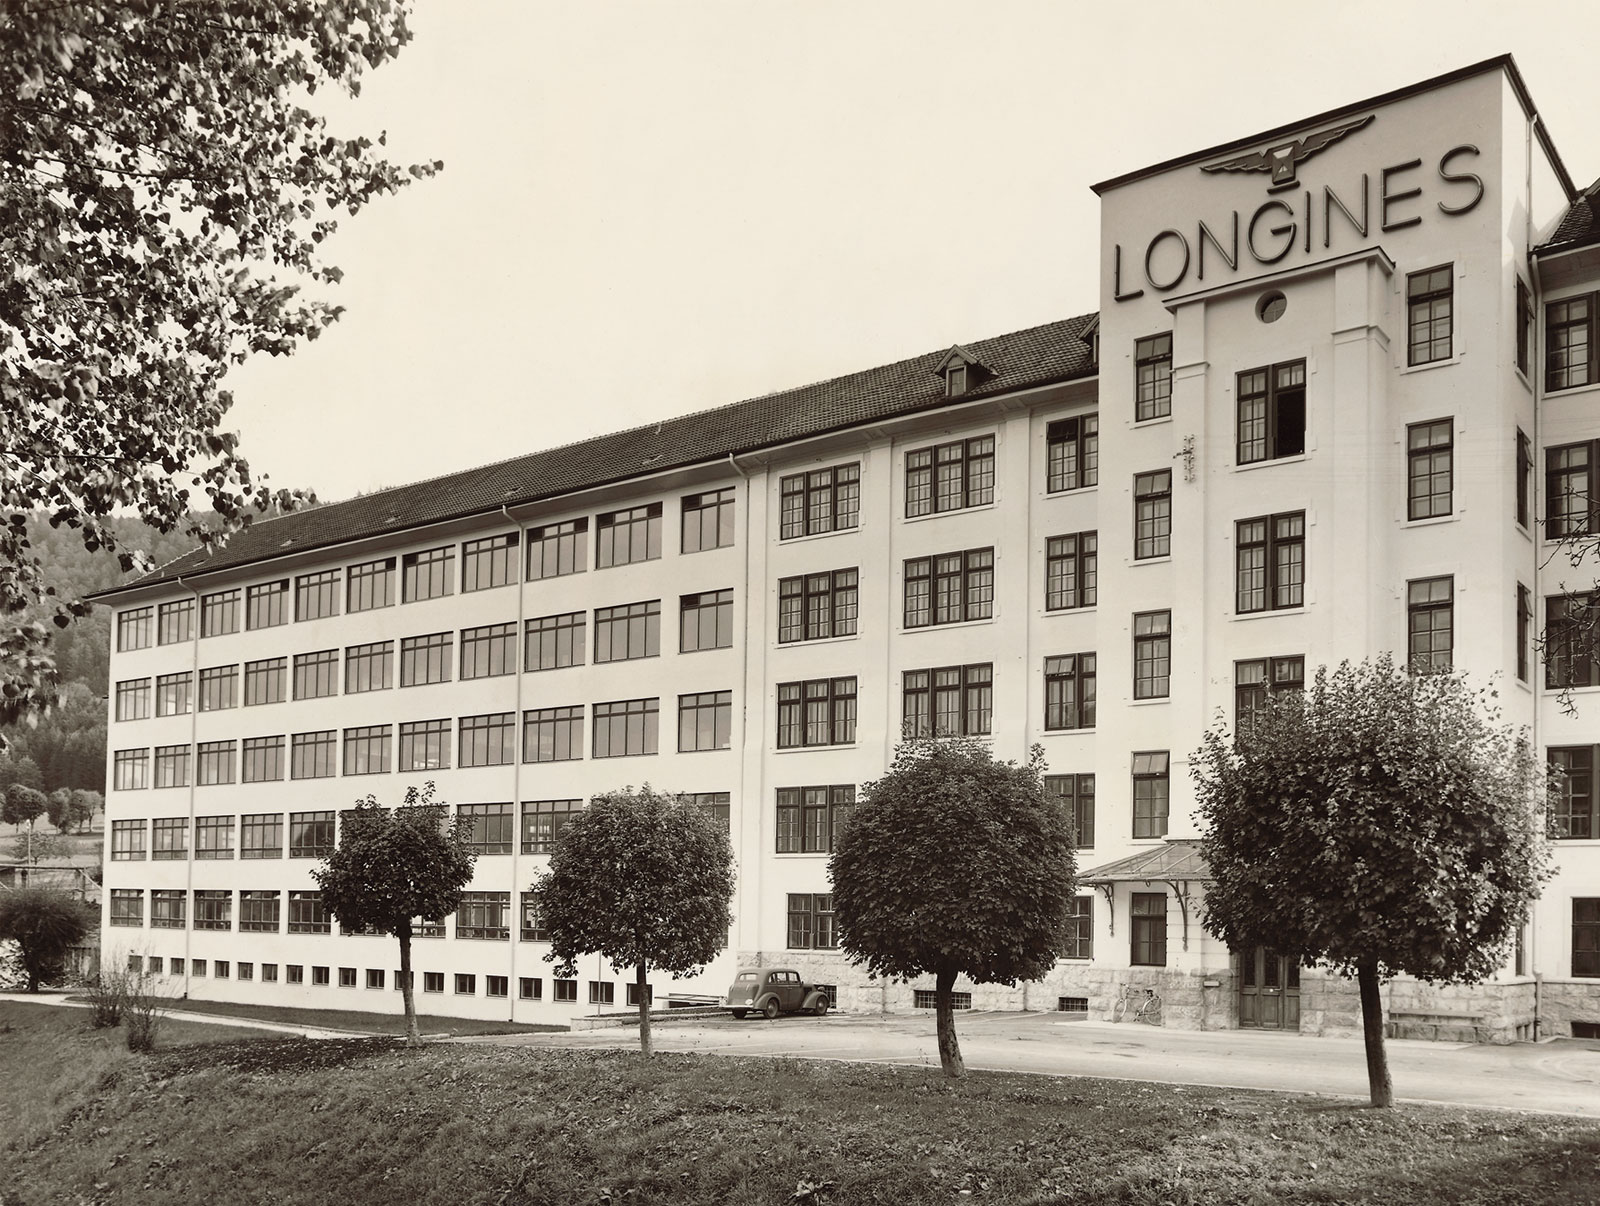 The Longines factory in 1950